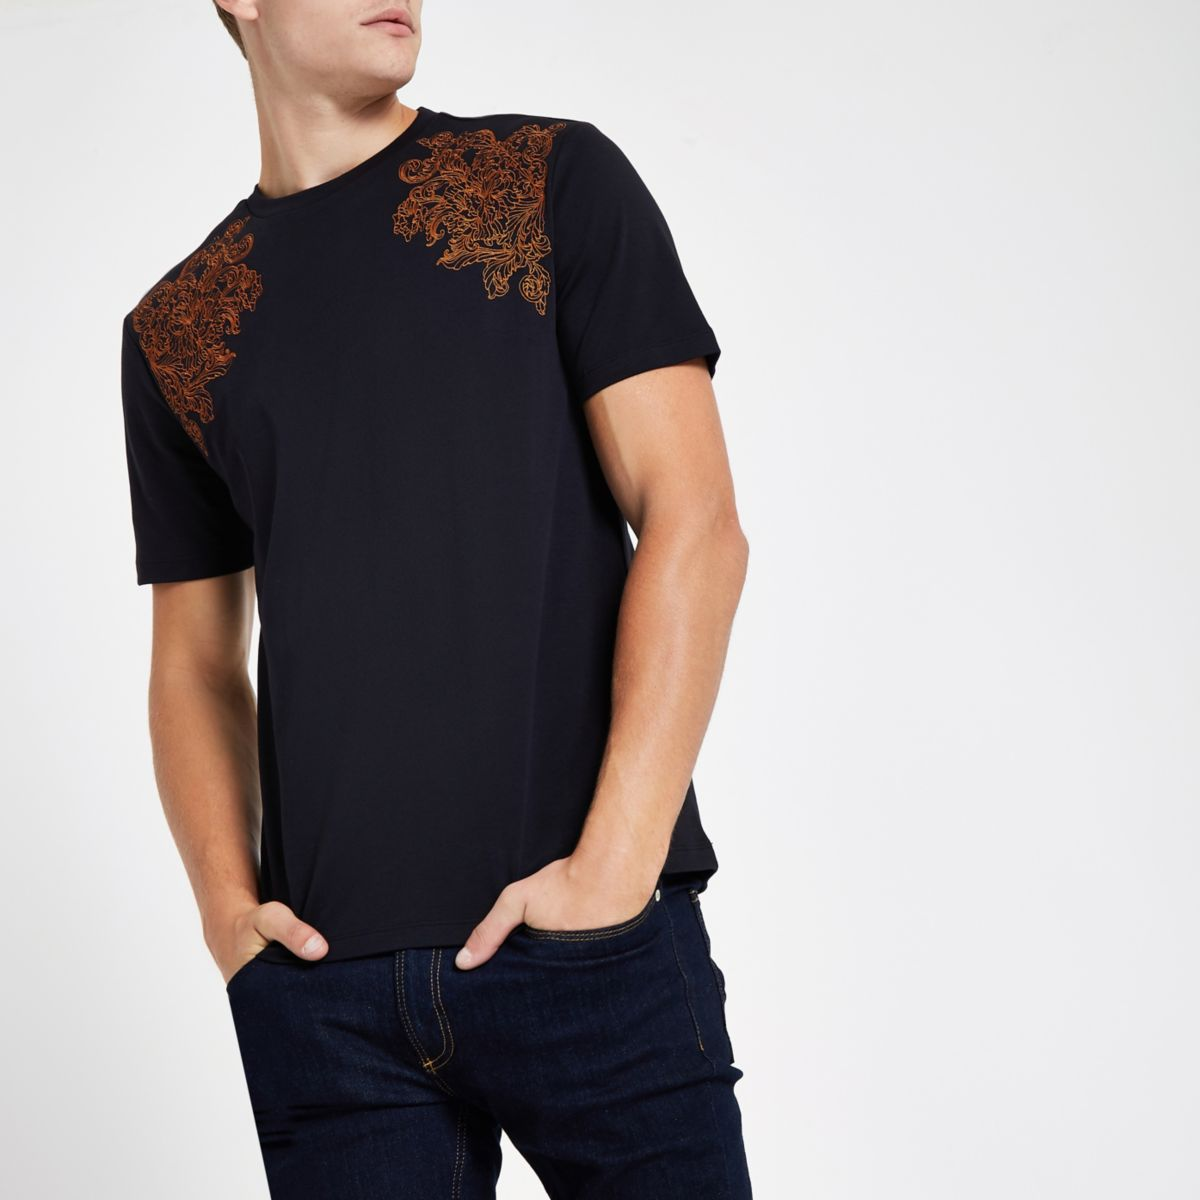 slim T RI embroidered shirt navy fit 30 WPqW4wzx8p